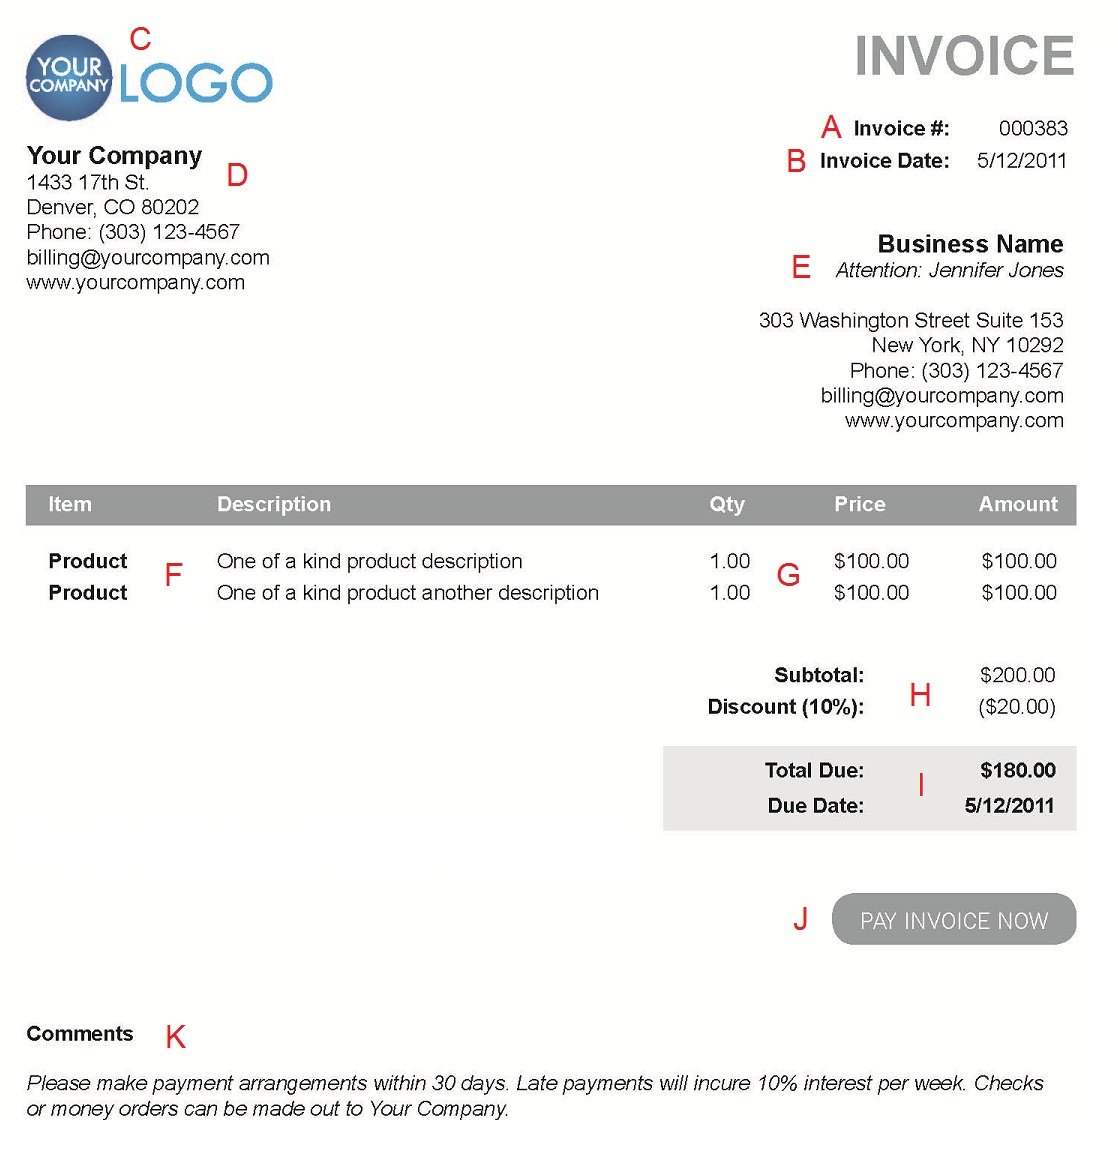 Pigbrotherus  Remarkable The  Different Sections Of An Electronic Payment Invoice With Engaging A  With Extraordinary Oracle Retail Invoice Matching Also Invoice Template Google In Addition Copy Of Invoice And Towing Invoices As Well As Dhl Invoice Additionally Anayx Invoices From Paysimplecom With Pigbrotherus  Engaging The  Different Sections Of An Electronic Payment Invoice With Extraordinary A  And Remarkable Oracle Retail Invoice Matching Also Invoice Template Google In Addition Copy Of Invoice From Paysimplecom